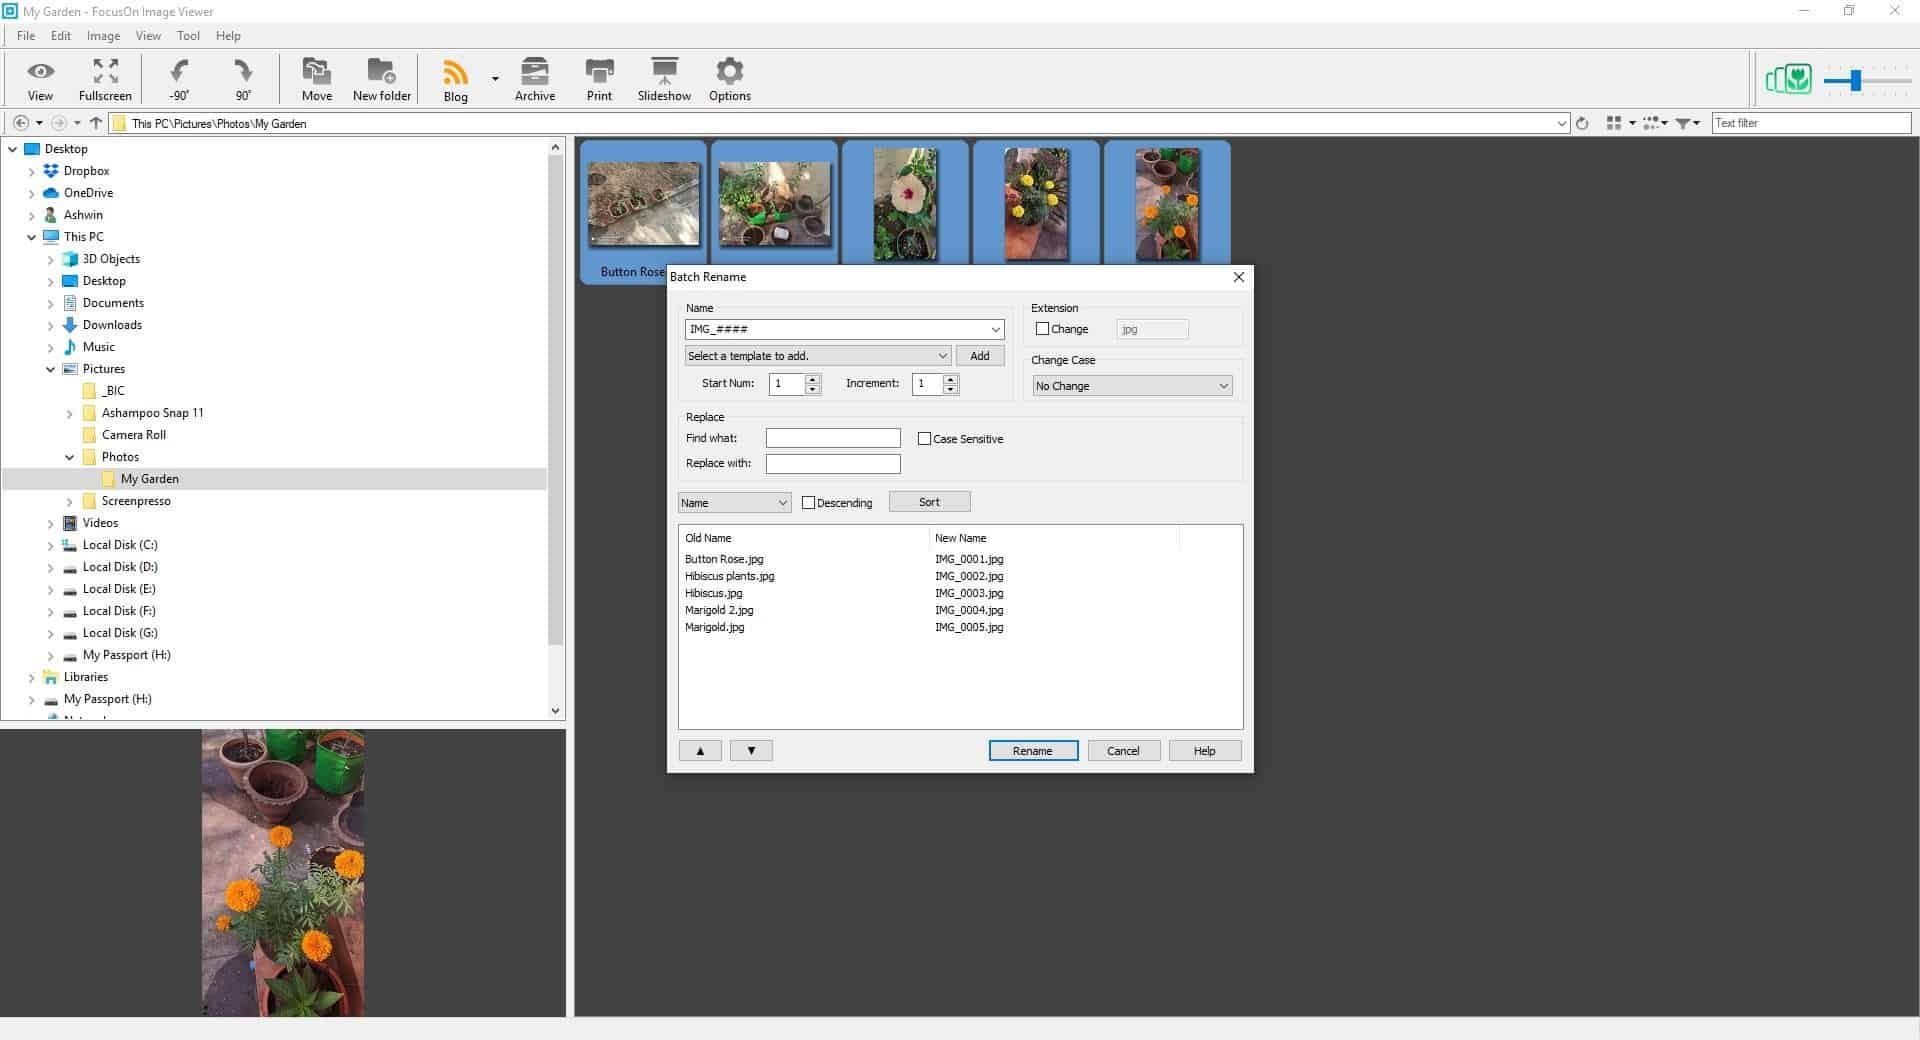 FocusOn Image Viewer Batch Renamer tool